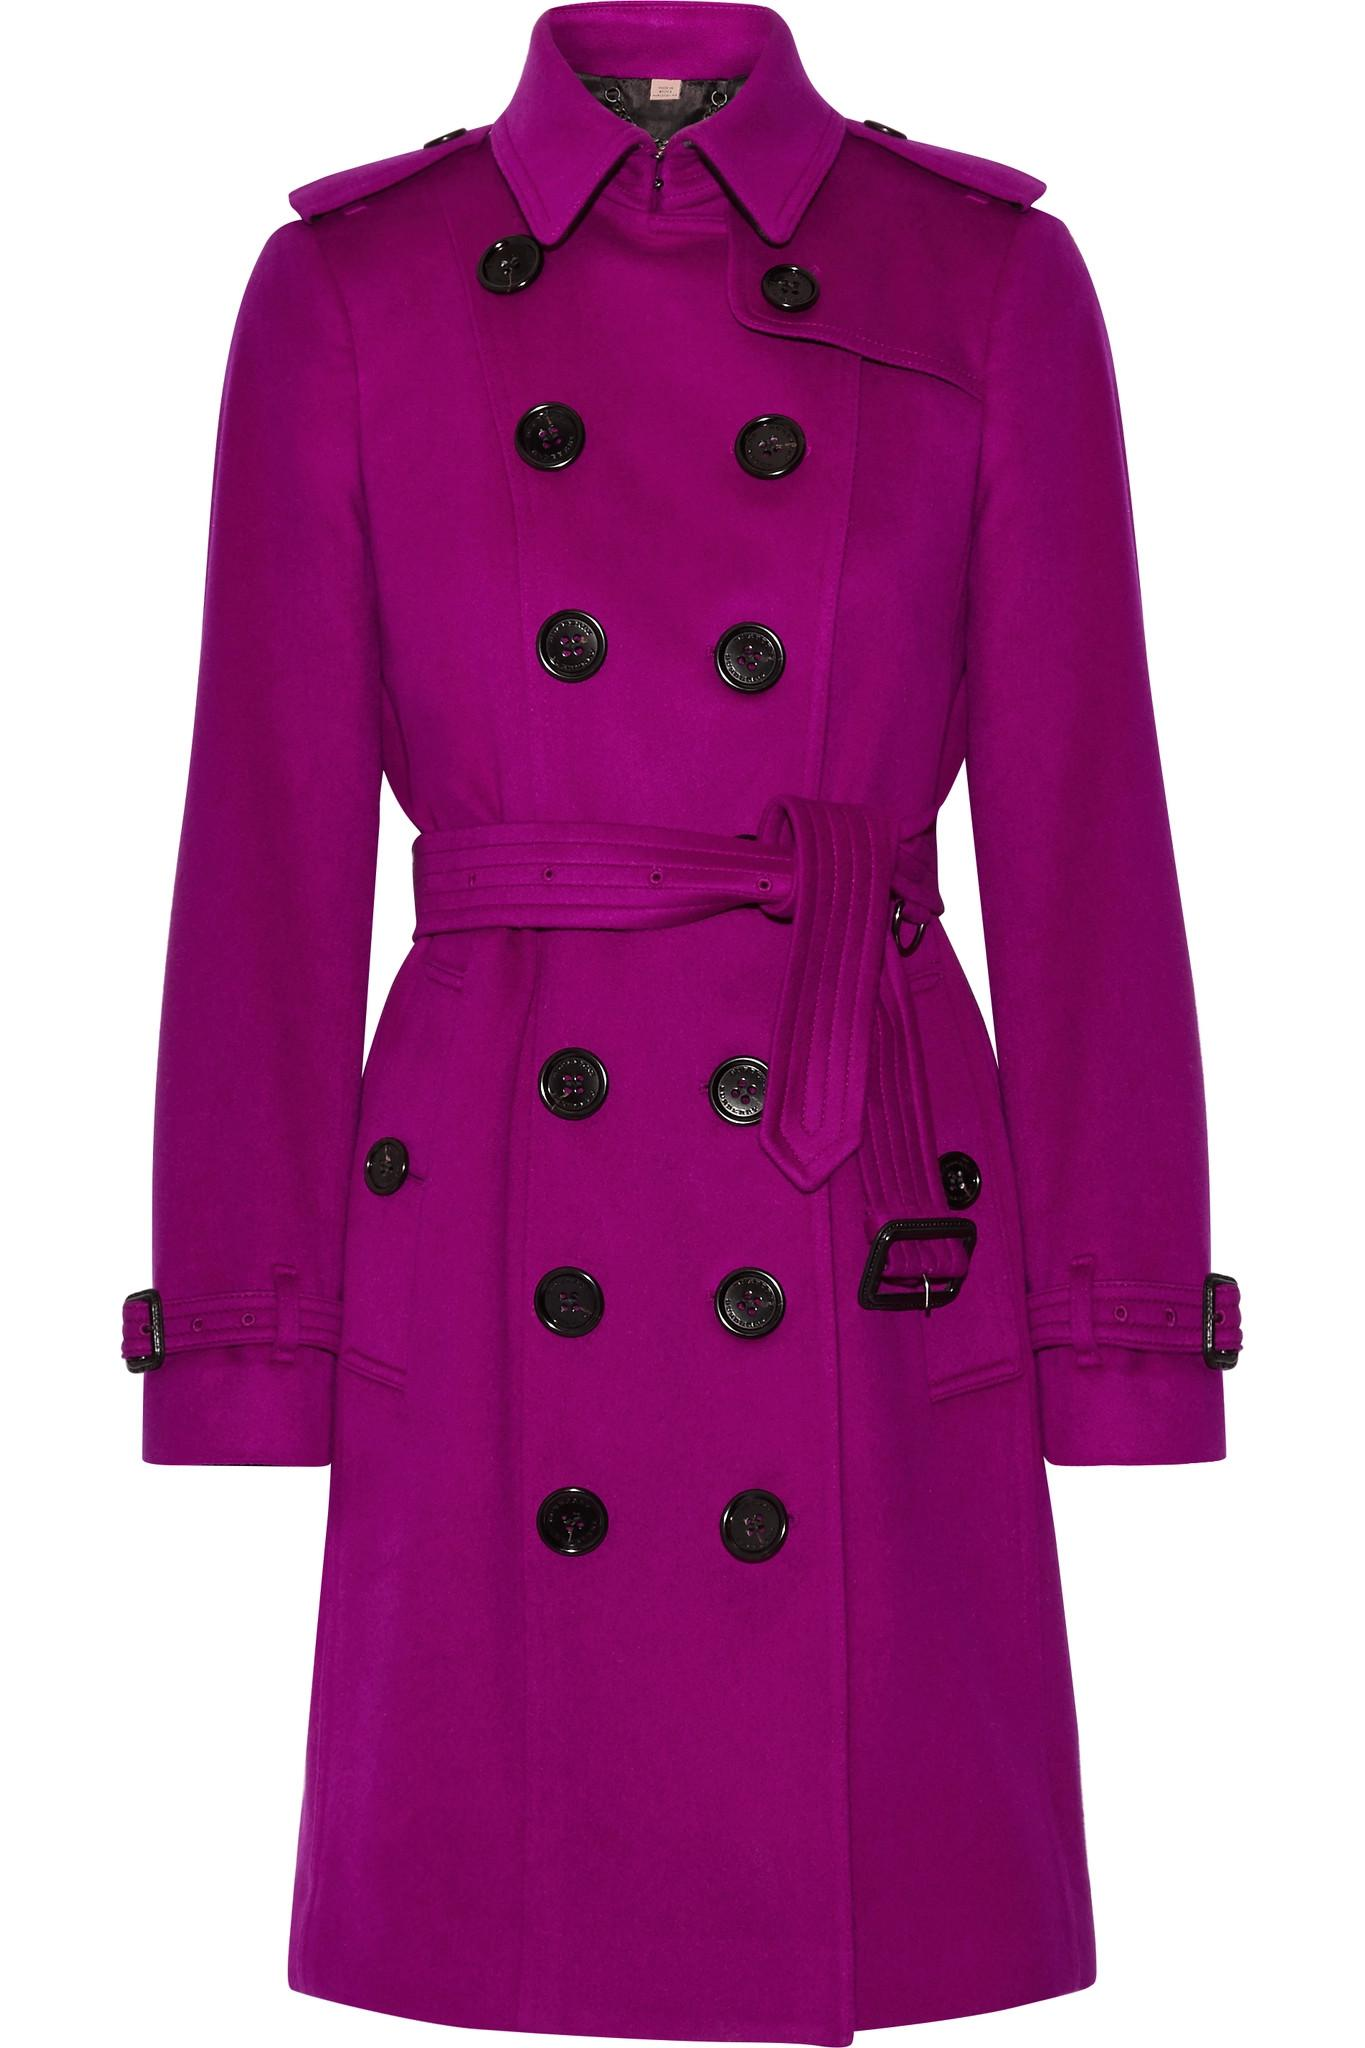 burberry the sandringham cashmere trench coat in purple lyst. Black Bedroom Furniture Sets. Home Design Ideas